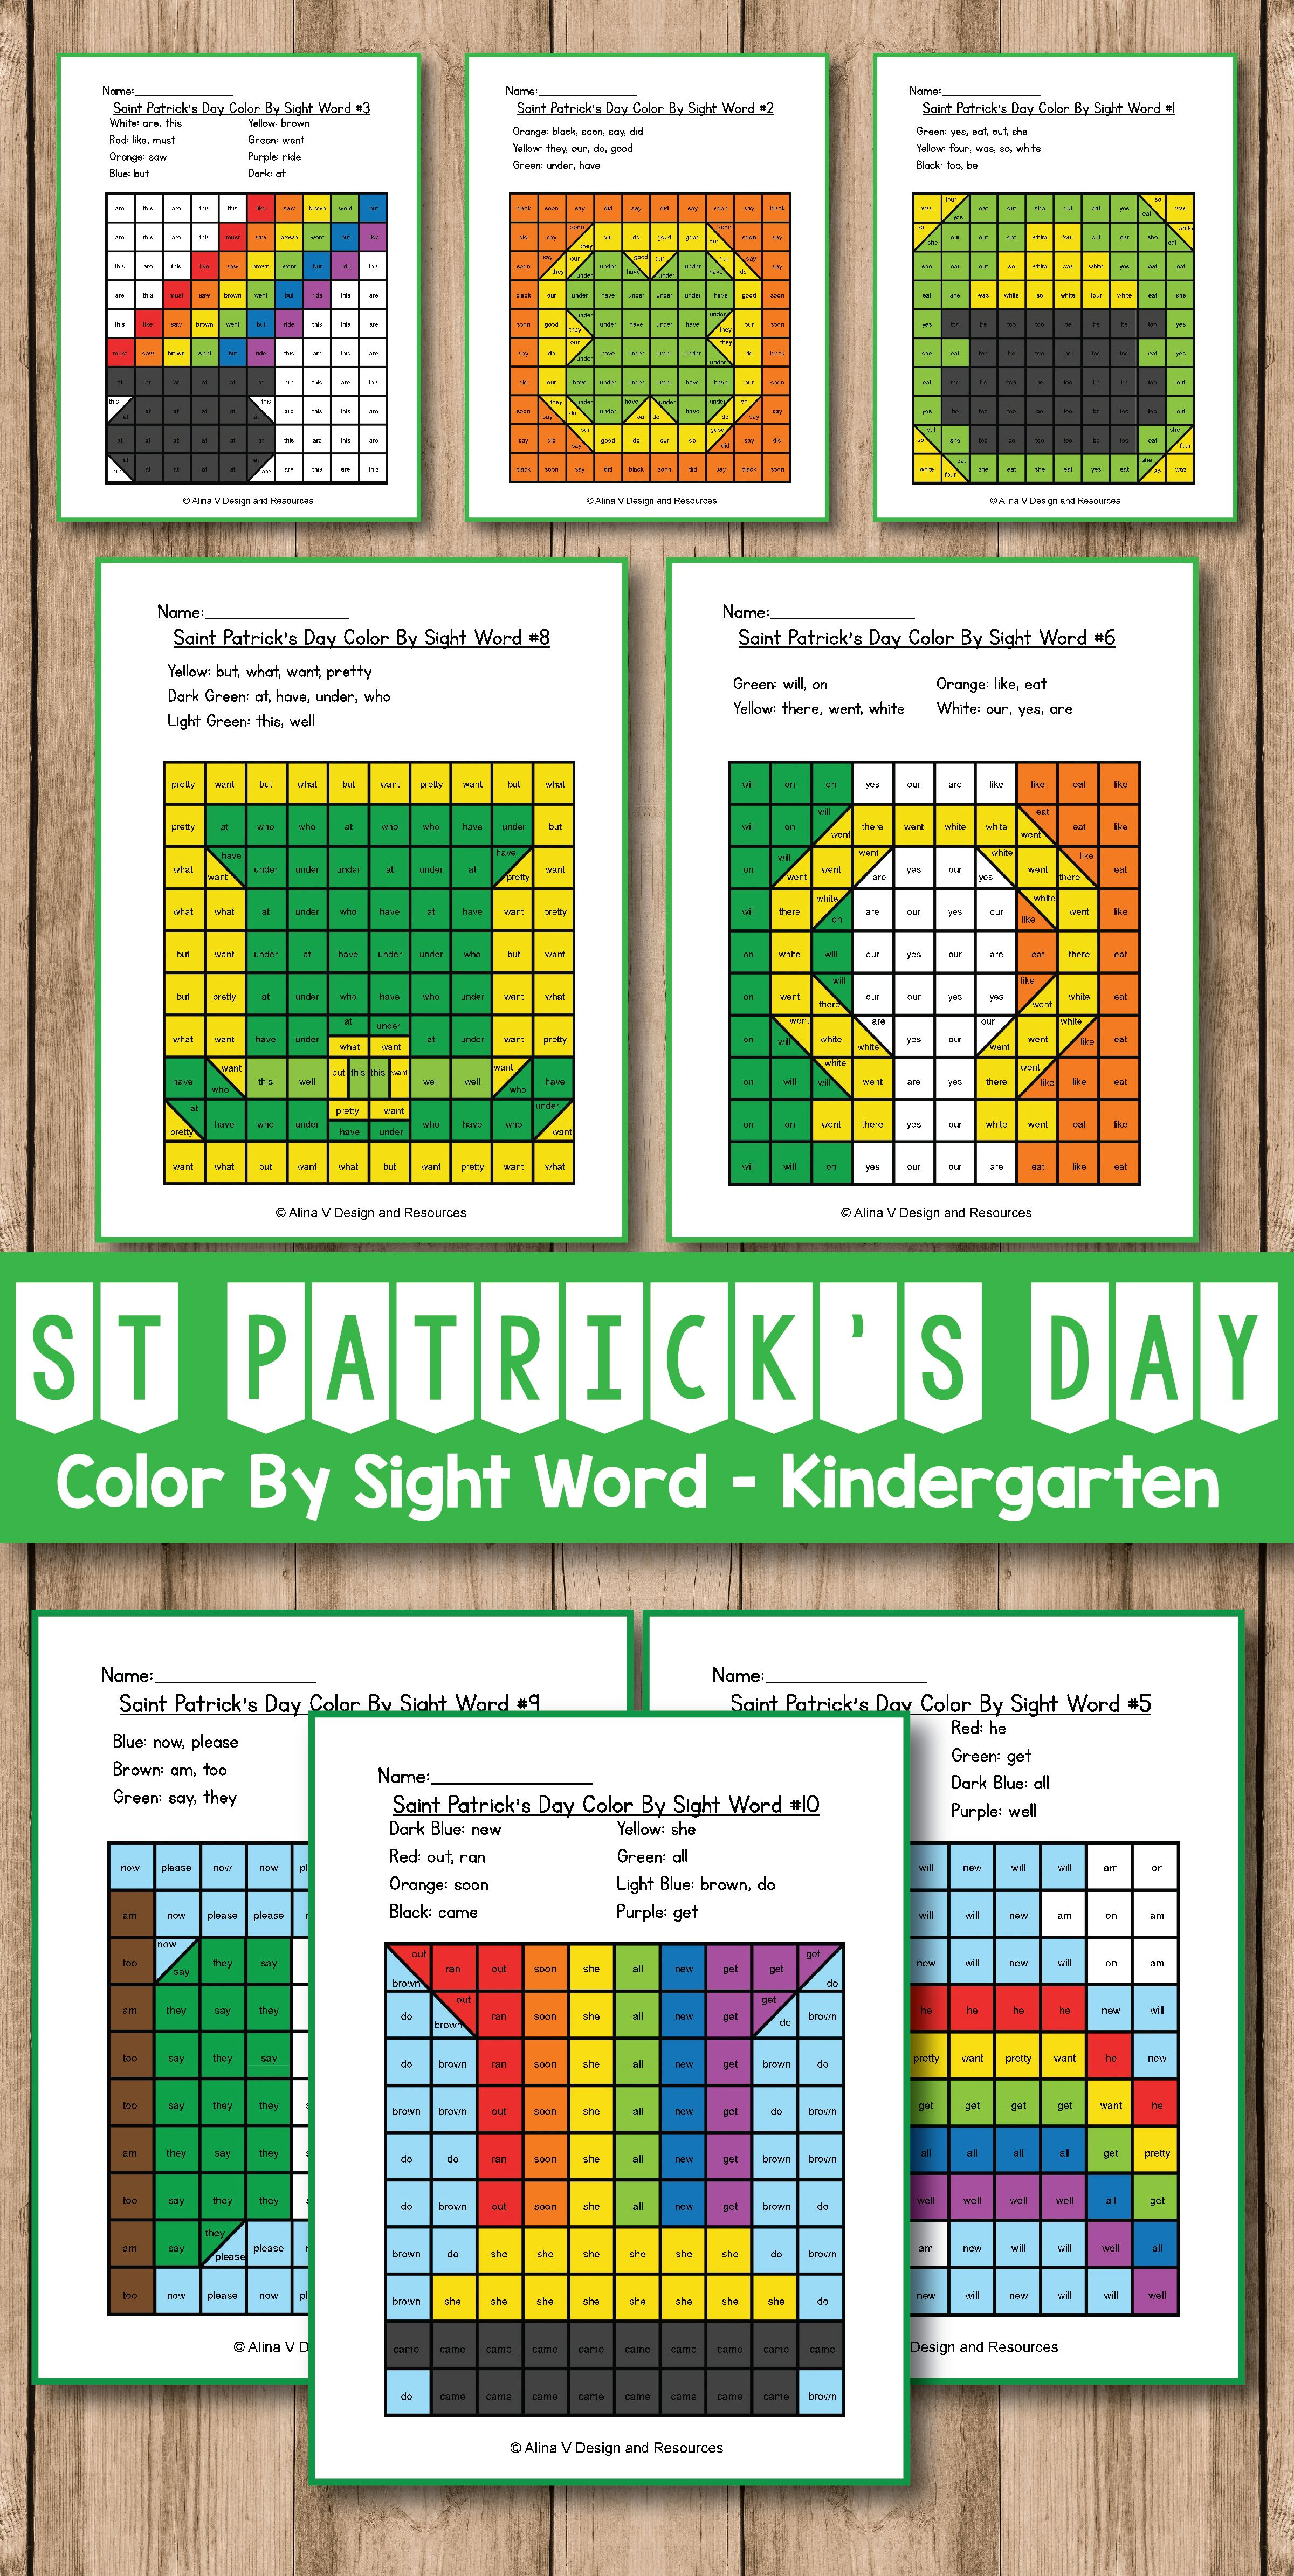 St Patricks Day Color By Sight Word St Patrick S Day